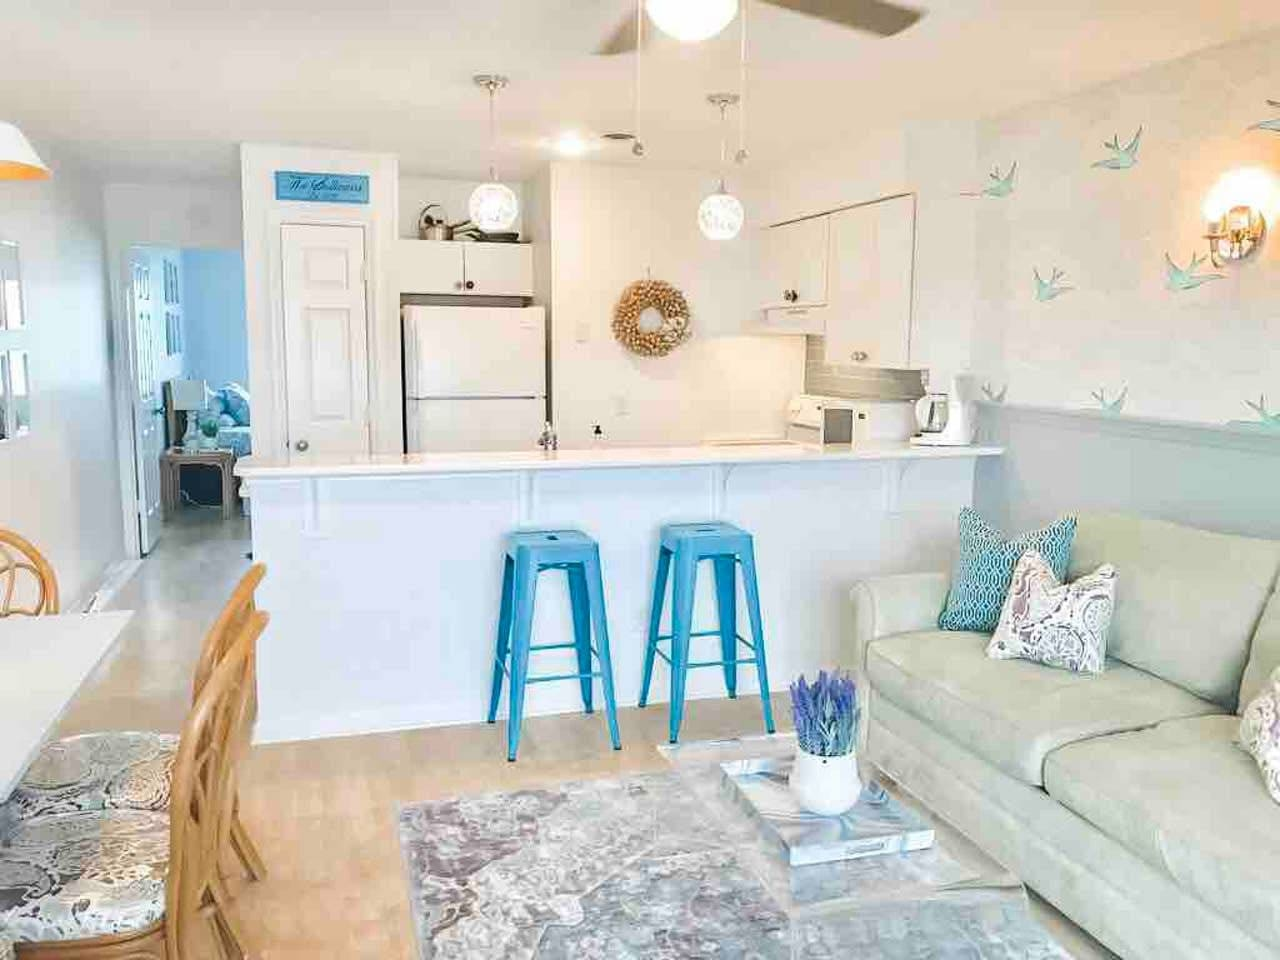 New owners as of 10/2019 but the same beautiful condo and amenities. Let us wow you and give you the best guest experience while being 1/2 a block from the beach!